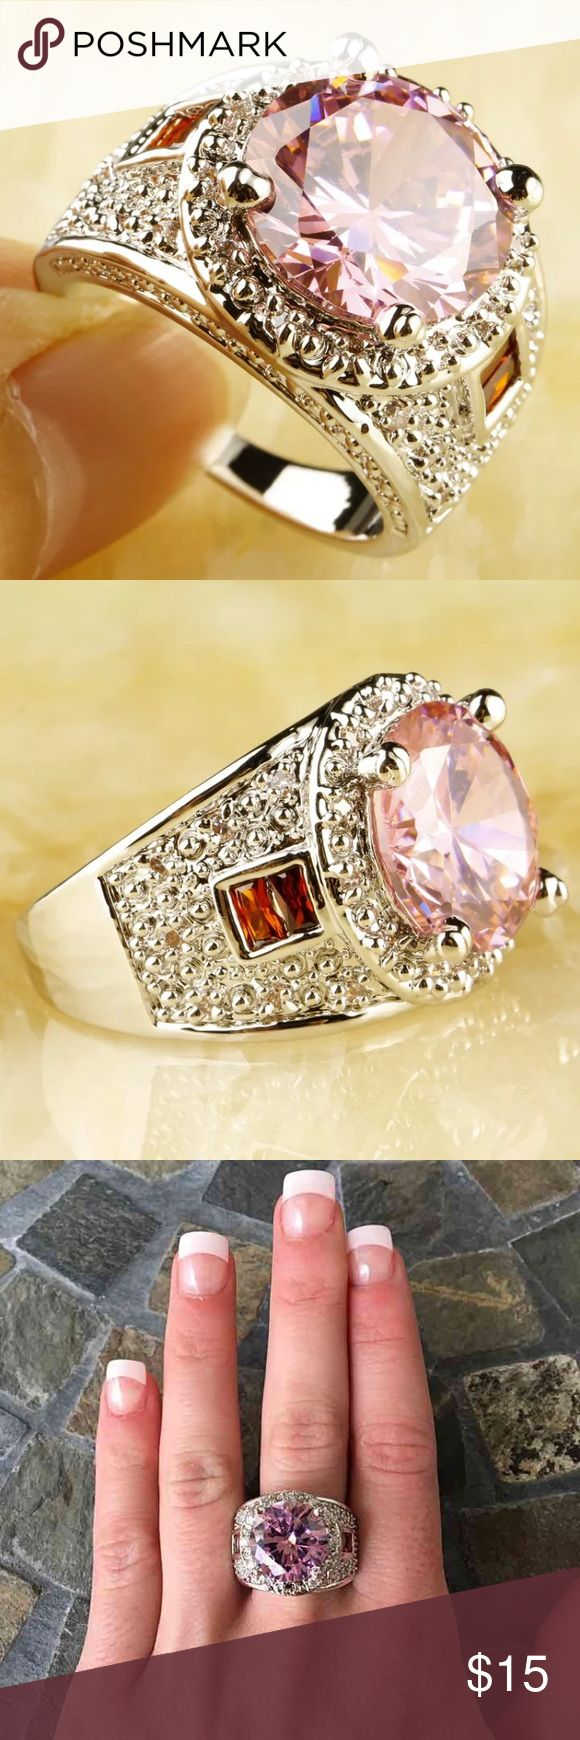 Round Pink/Red Gemstone Silver Cocktail Ring Huge round pink center stone with a hall setting Two small red emerald cut stones on either side  Thick silver design engraved band  FIRM PRICE/NO TRADES❗ Jewelry Rings